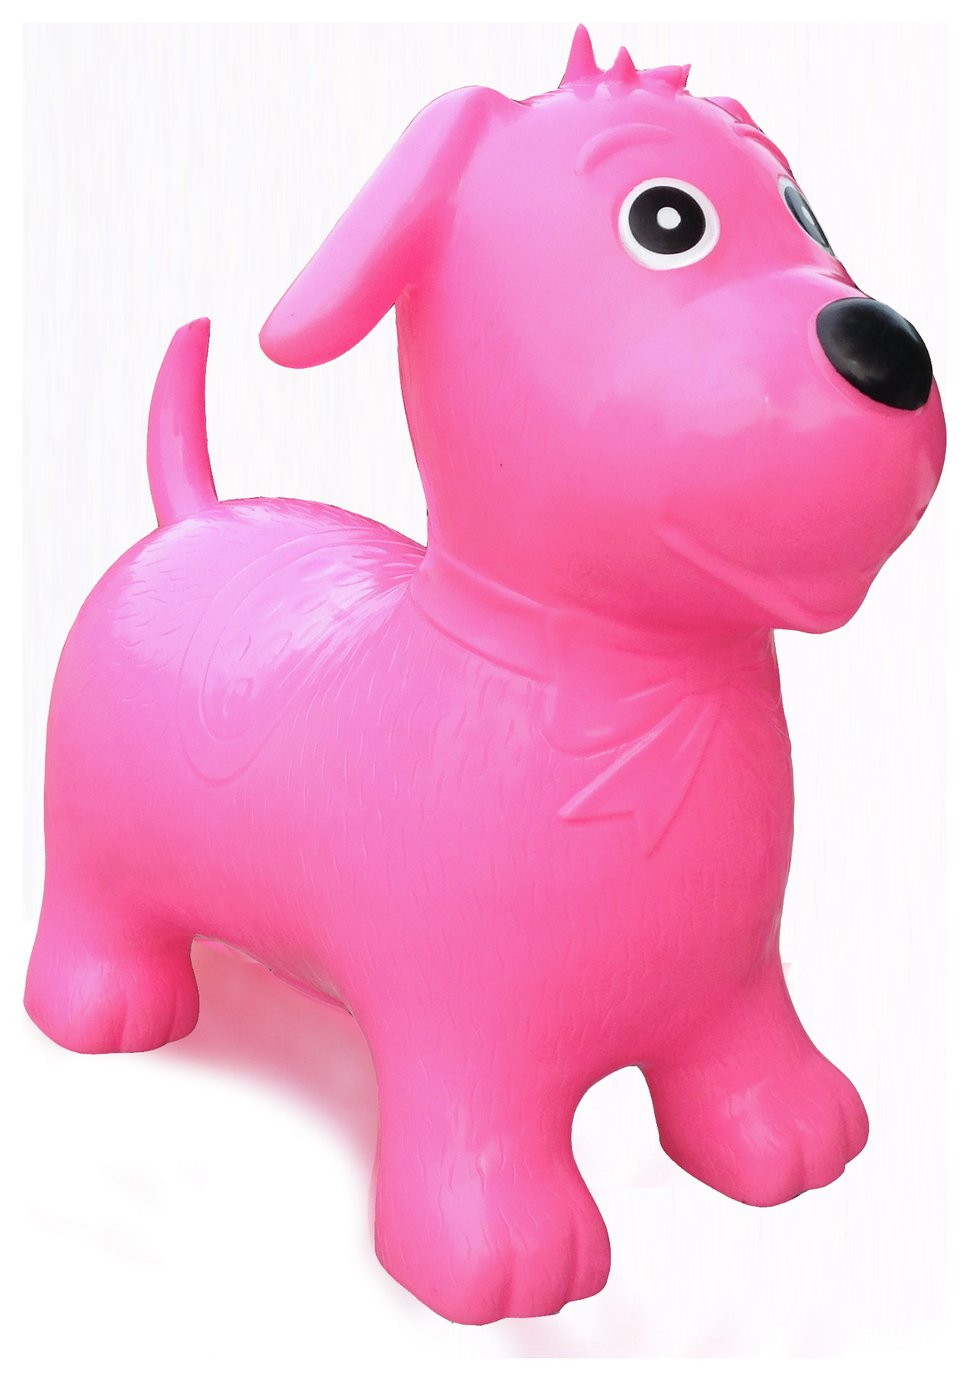 Image of HappyHopperz Inflatable Bouncer Dog - Pink.